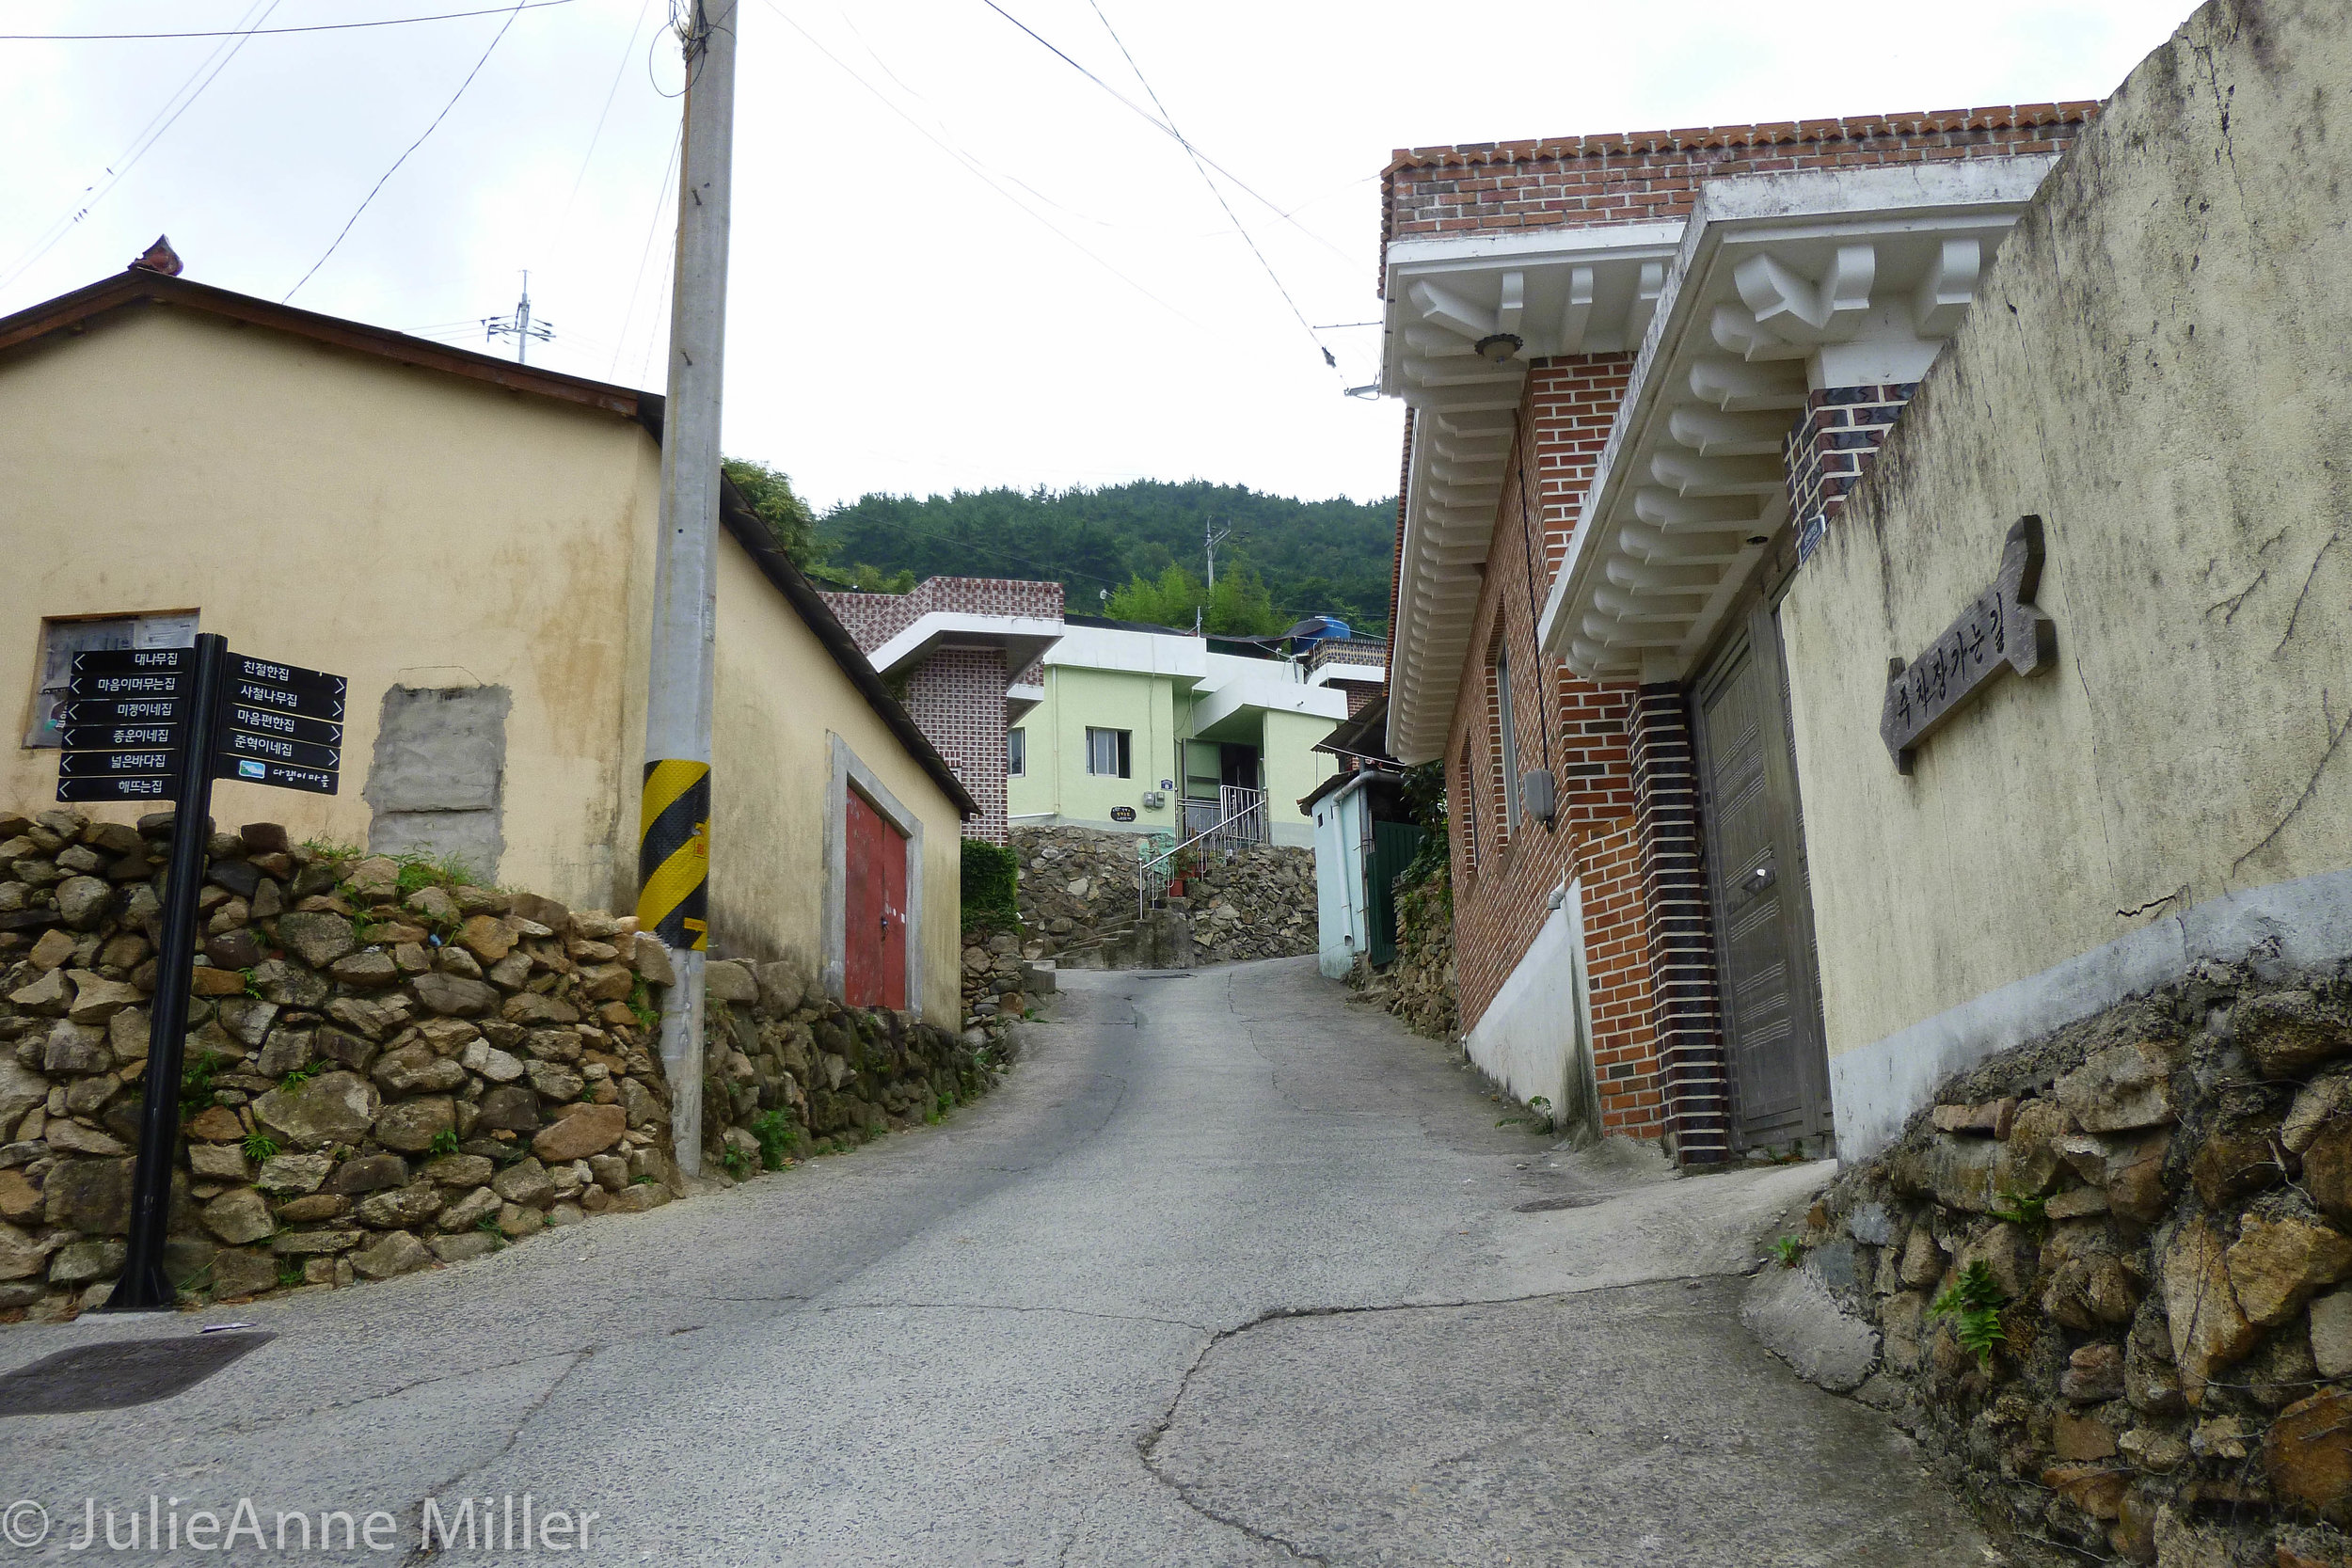 Gacheon Daraengi Village (가천 다랭이 마을)